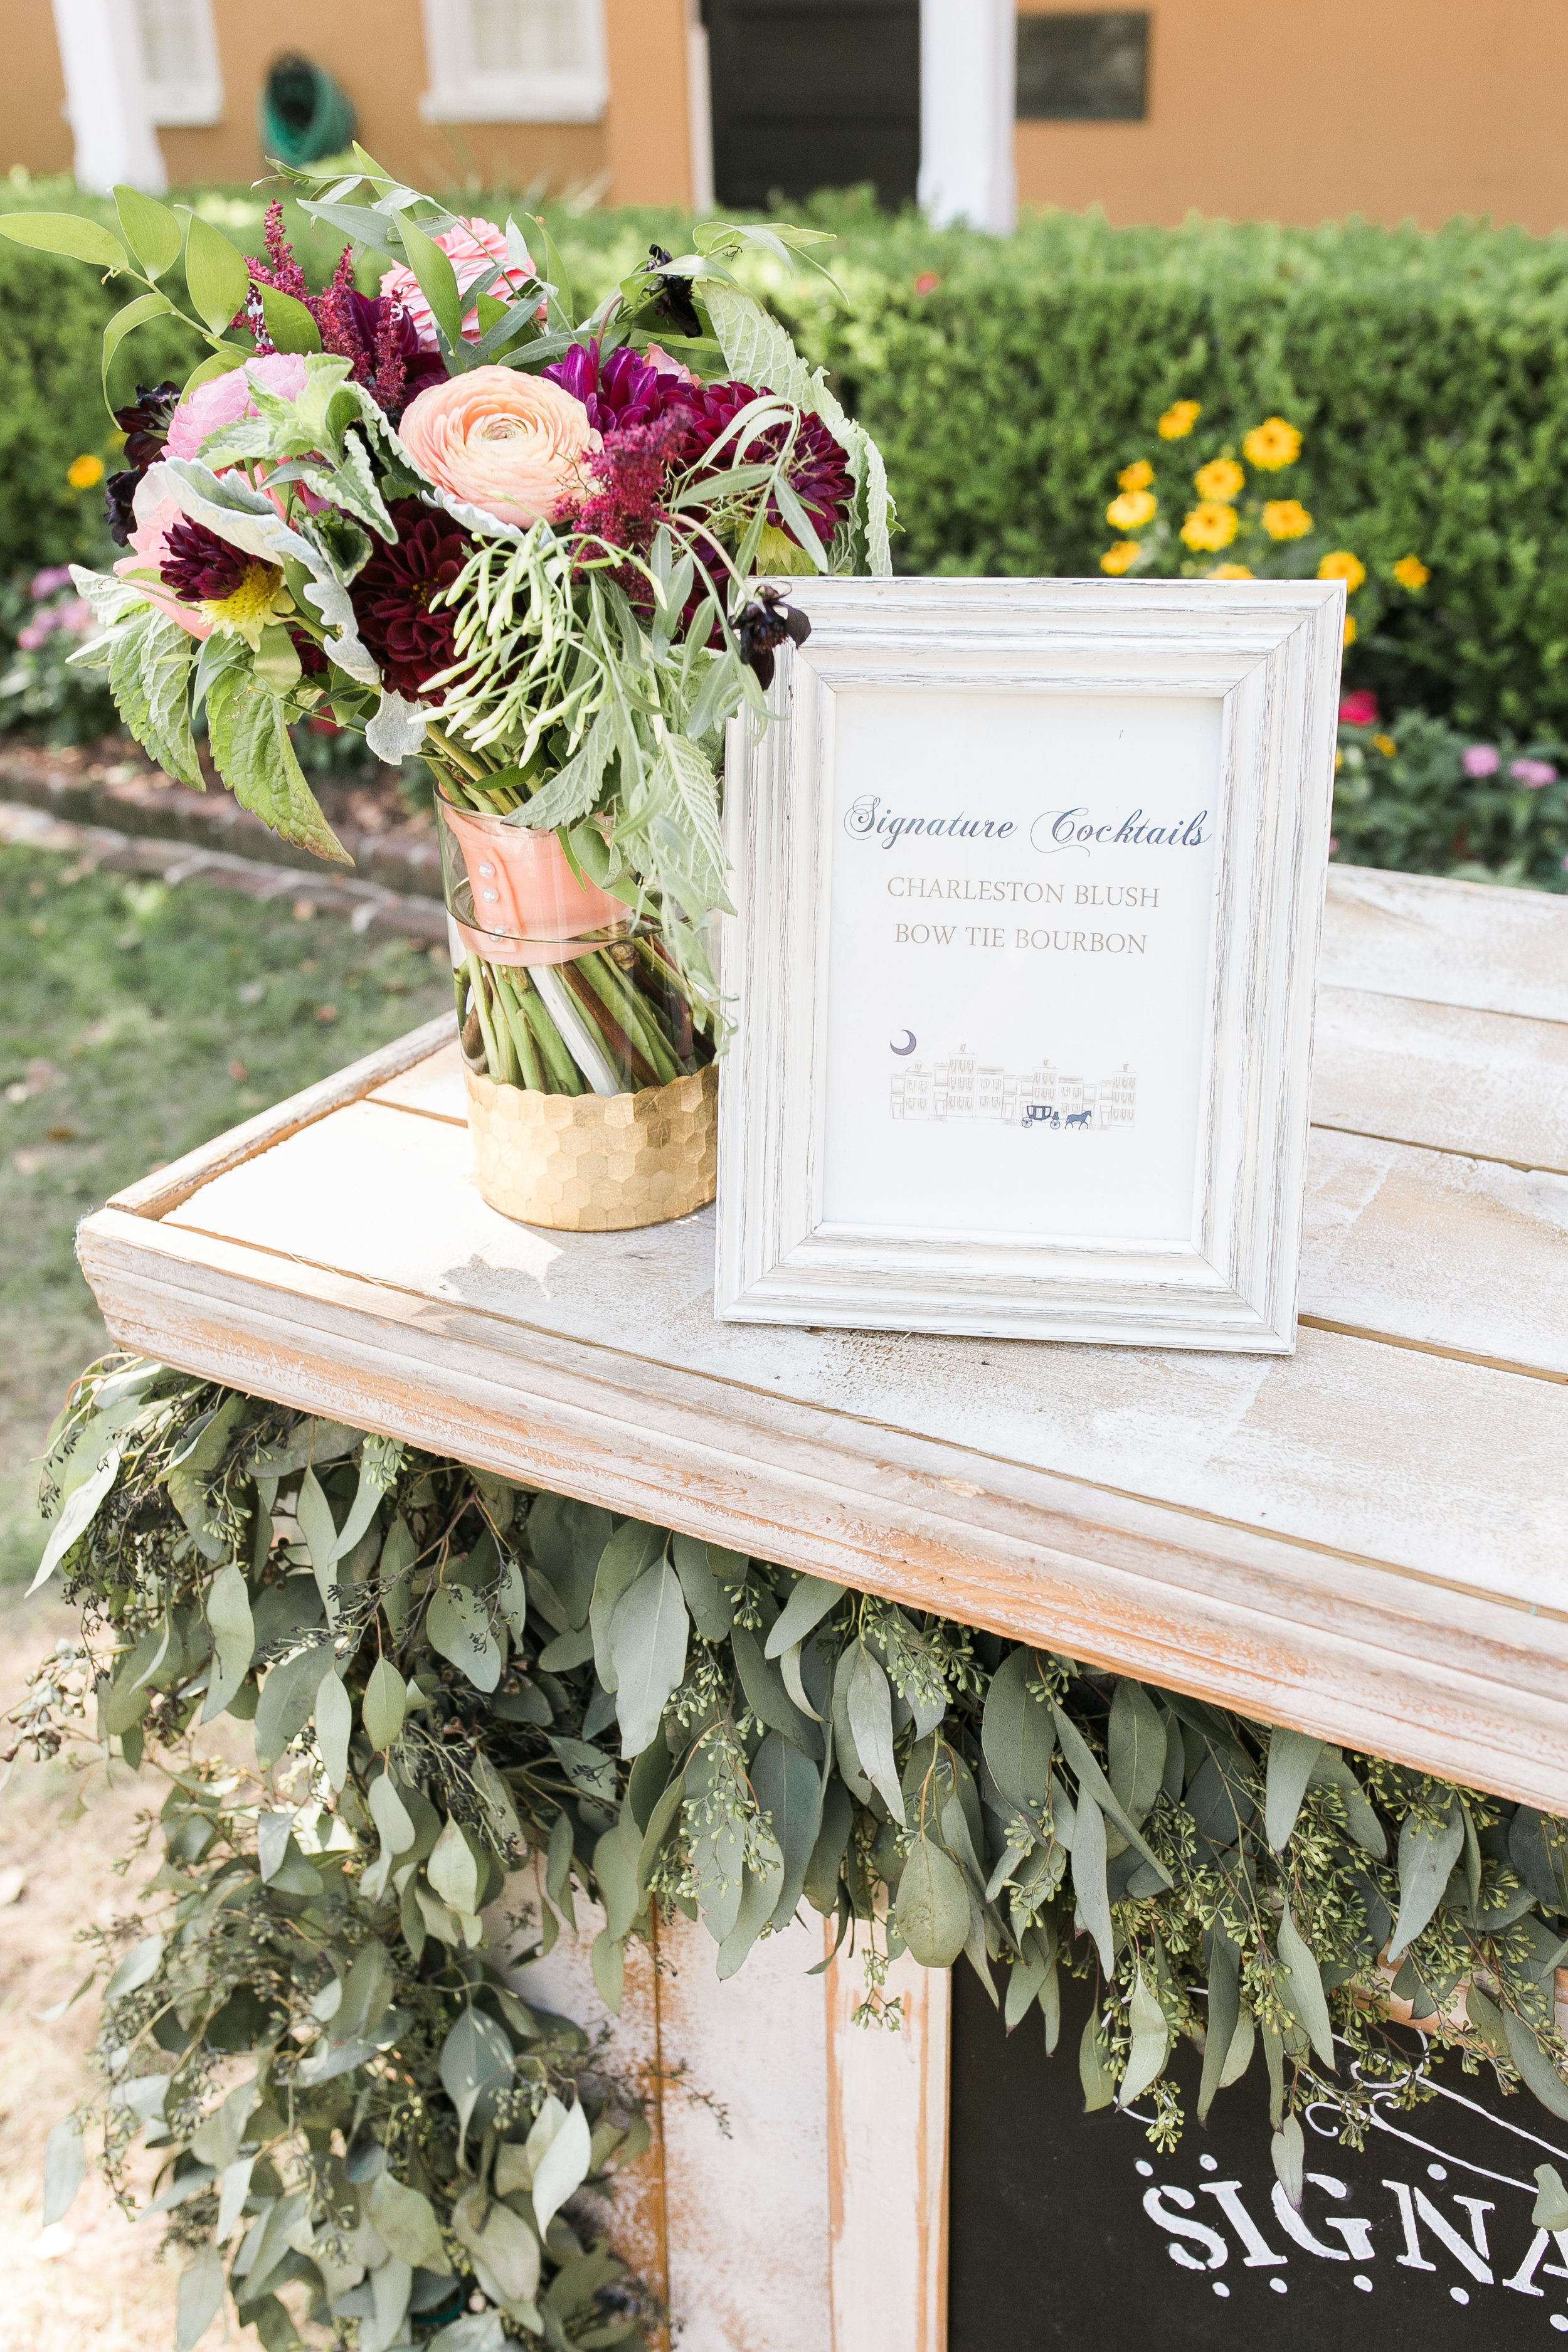 Custom bar menu by Dodeline Design for wedding at The Thomas Bennett House  Colorful outdoor reception at The Thomas Bennett House wedding in Charleston, SC  //  photographed by Jenna Weddings  Traditional wedding ceremony at Cathedral of St. John the Baptist in Charleston, SC  //  A Lowcountry Wedding Magazine & Blog